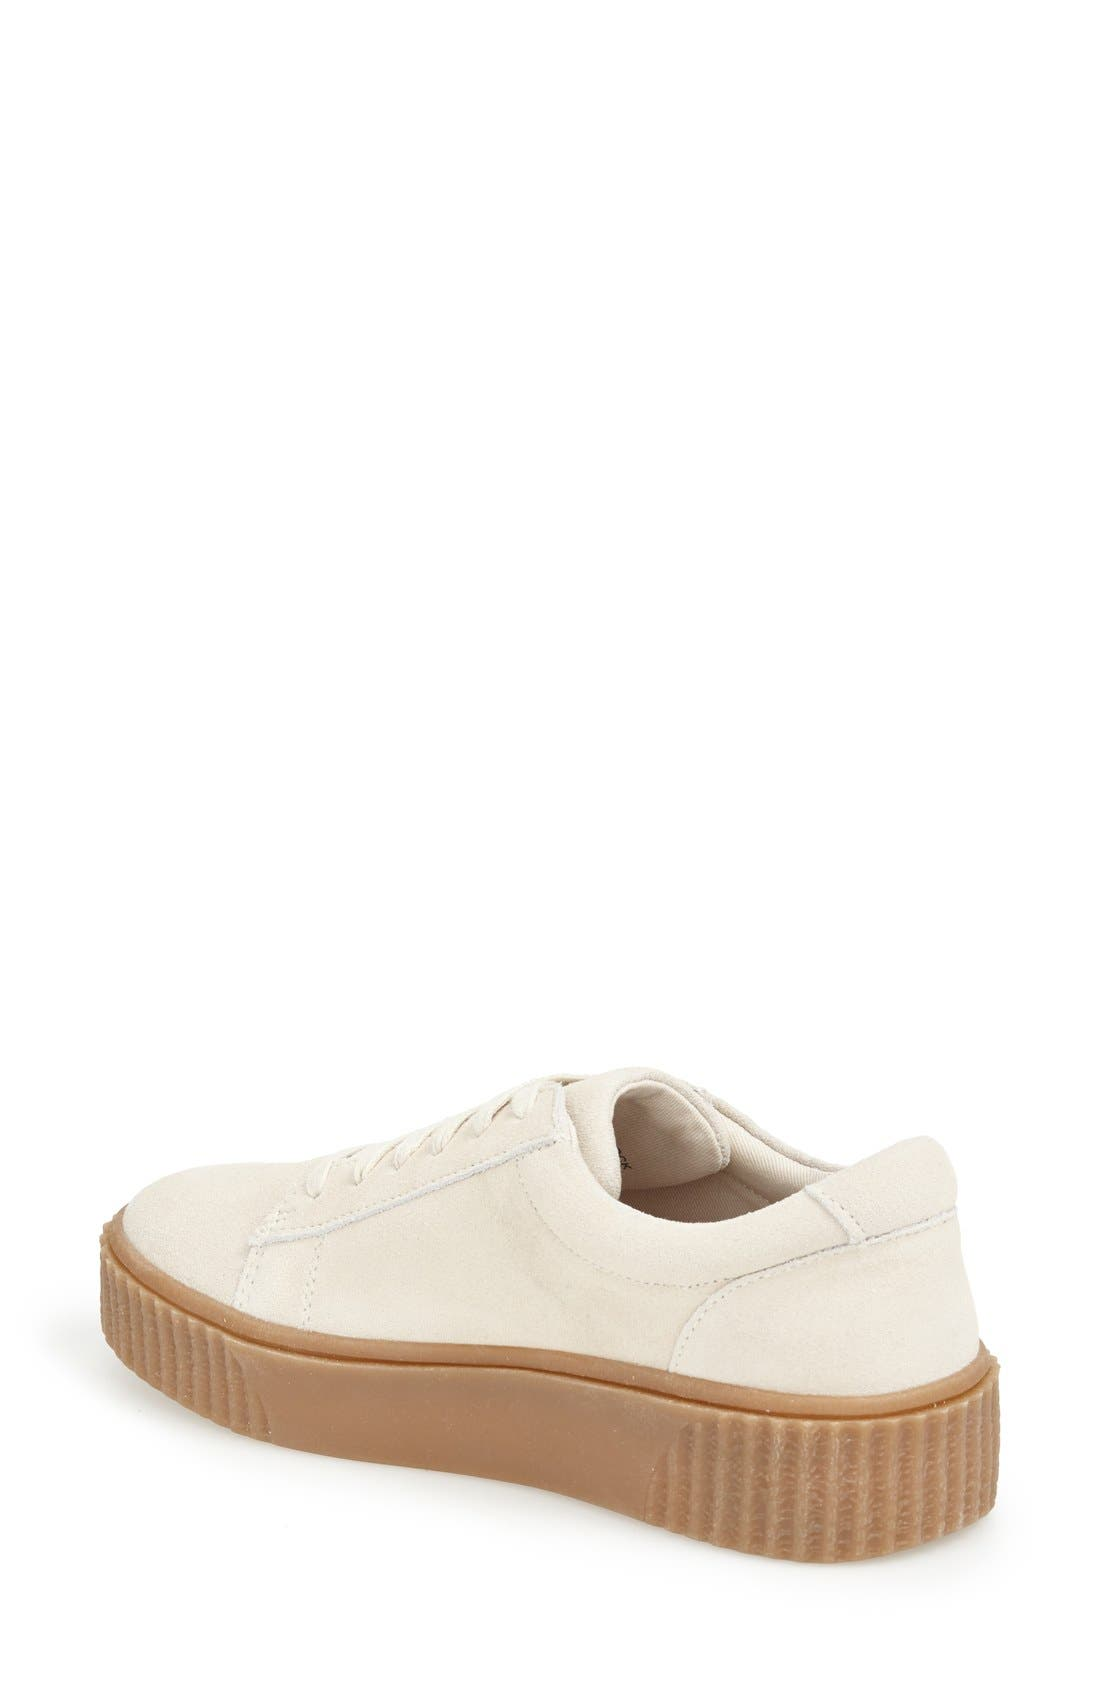 Alternate Image 2  - Steve Madden 'Holllly' Platform Sneaker (Women)